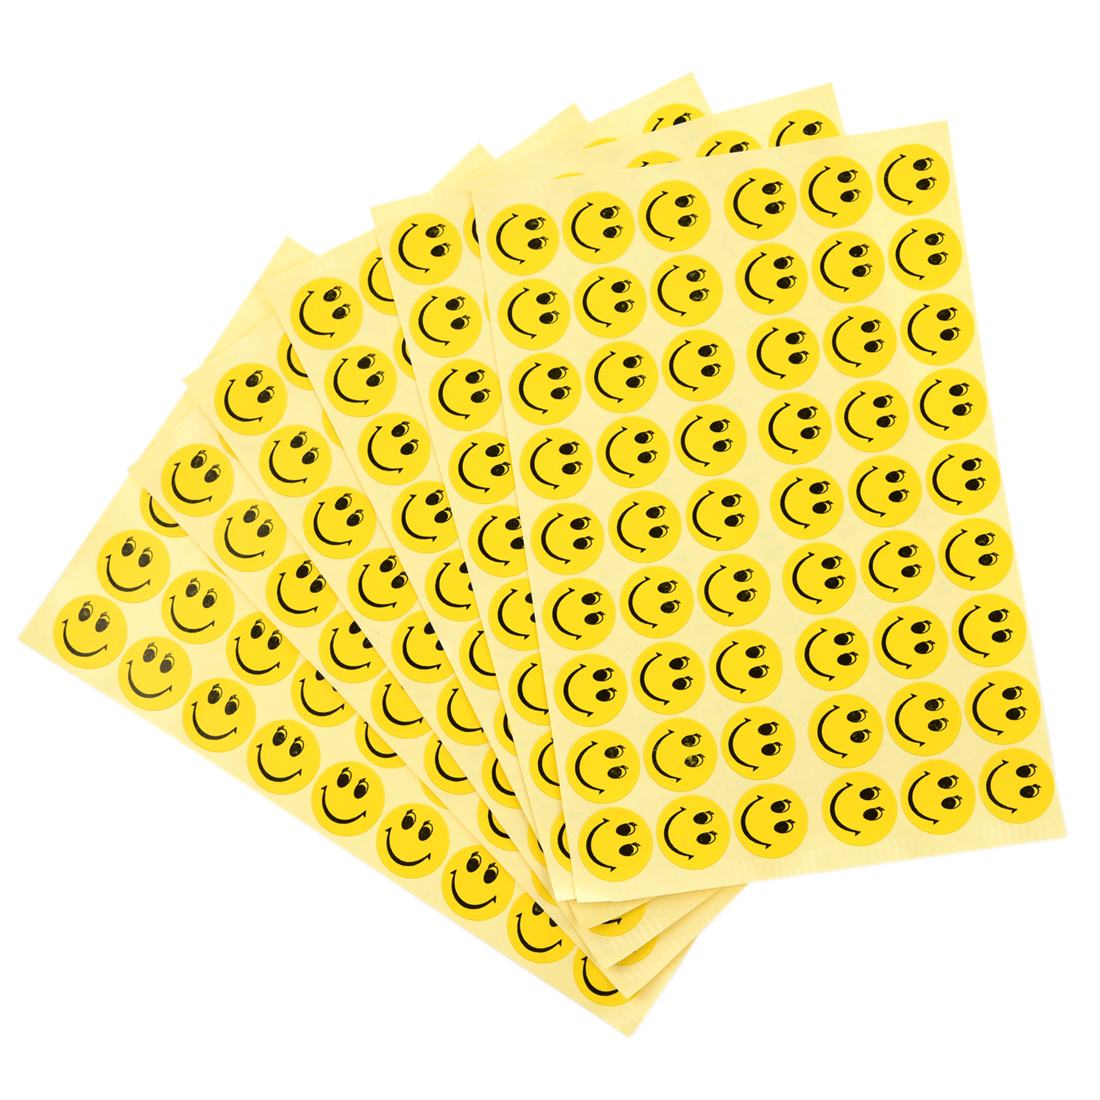 324 pcs Smiley Face Children Reward Merit Praise Stickers for School Teacher party diy 4 core usb data charging cables w shielding layer white 5 pcs 100cm